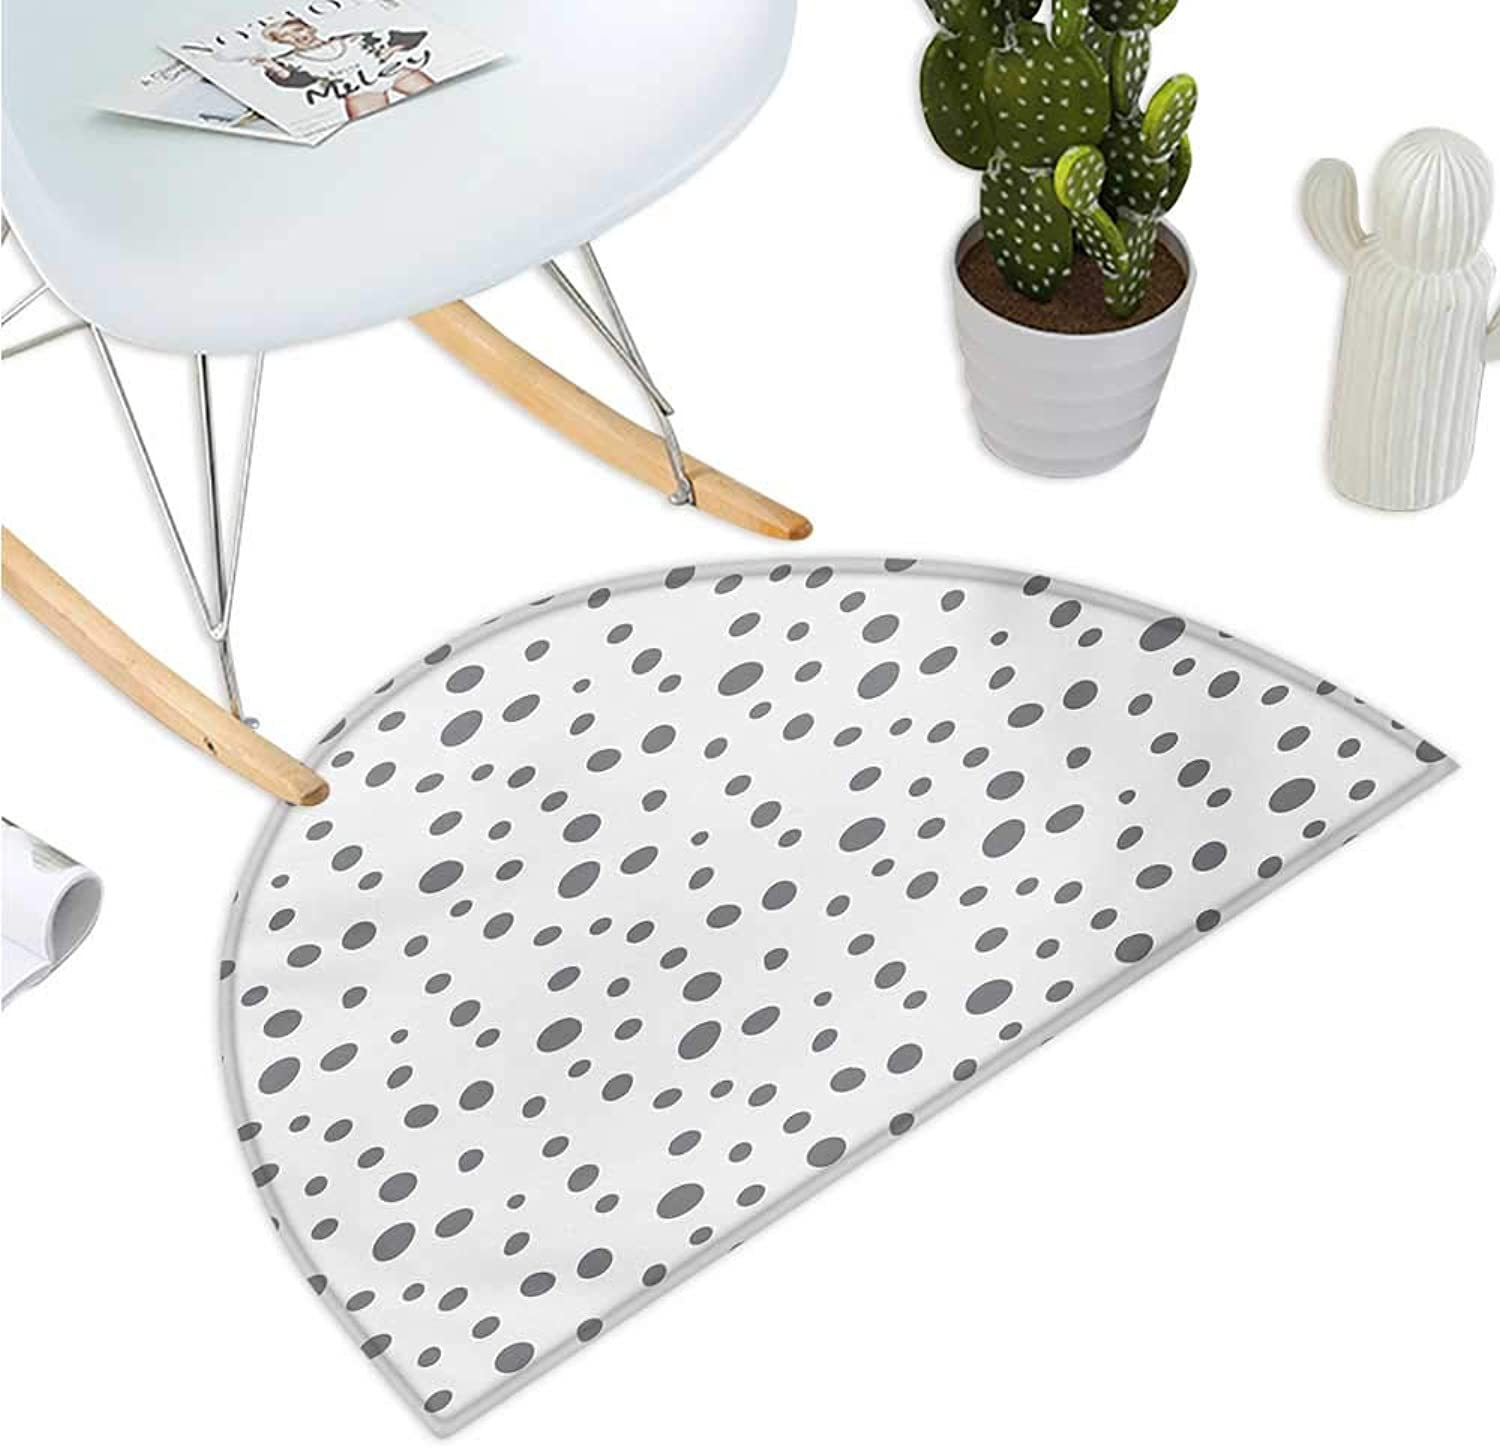 Grey and White Semicircular Cushion Simplistic Spotty Dalmatian Pattern in Retro Style with Doodle Design Entry Door Mat H 43.3  xD 64.9  Grey and White